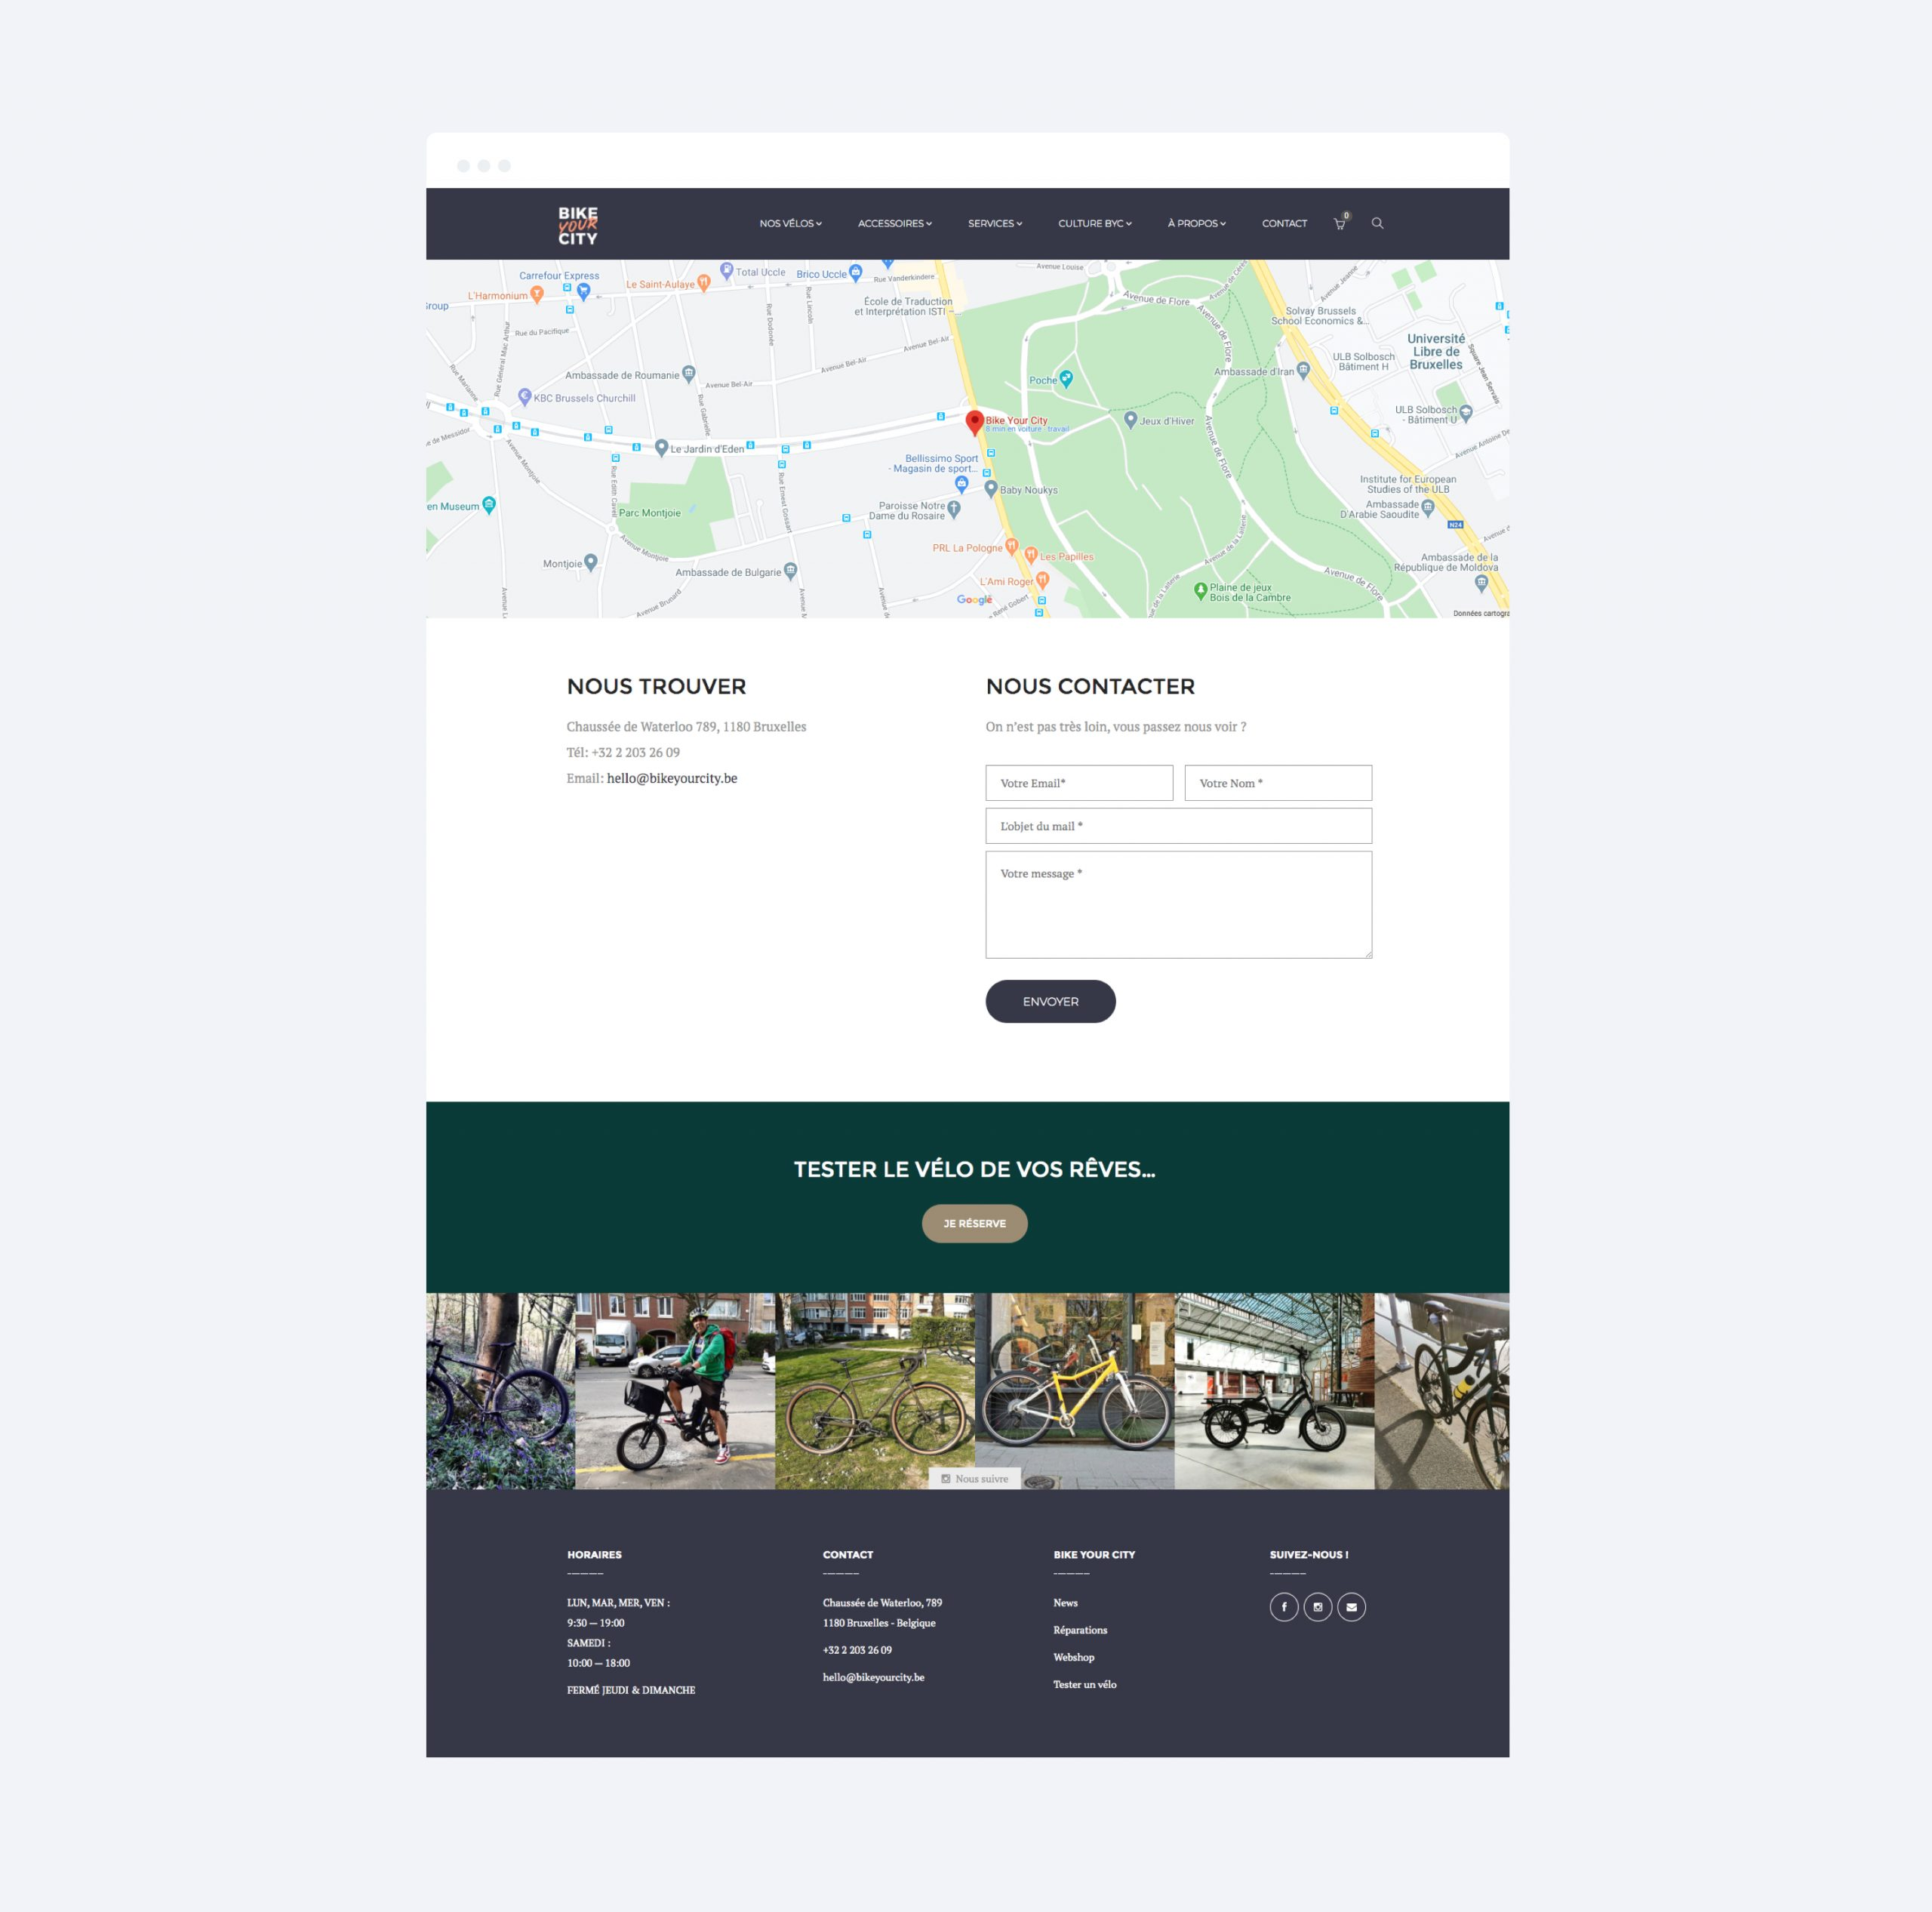 BIKE YOUR CITY - CONTACT